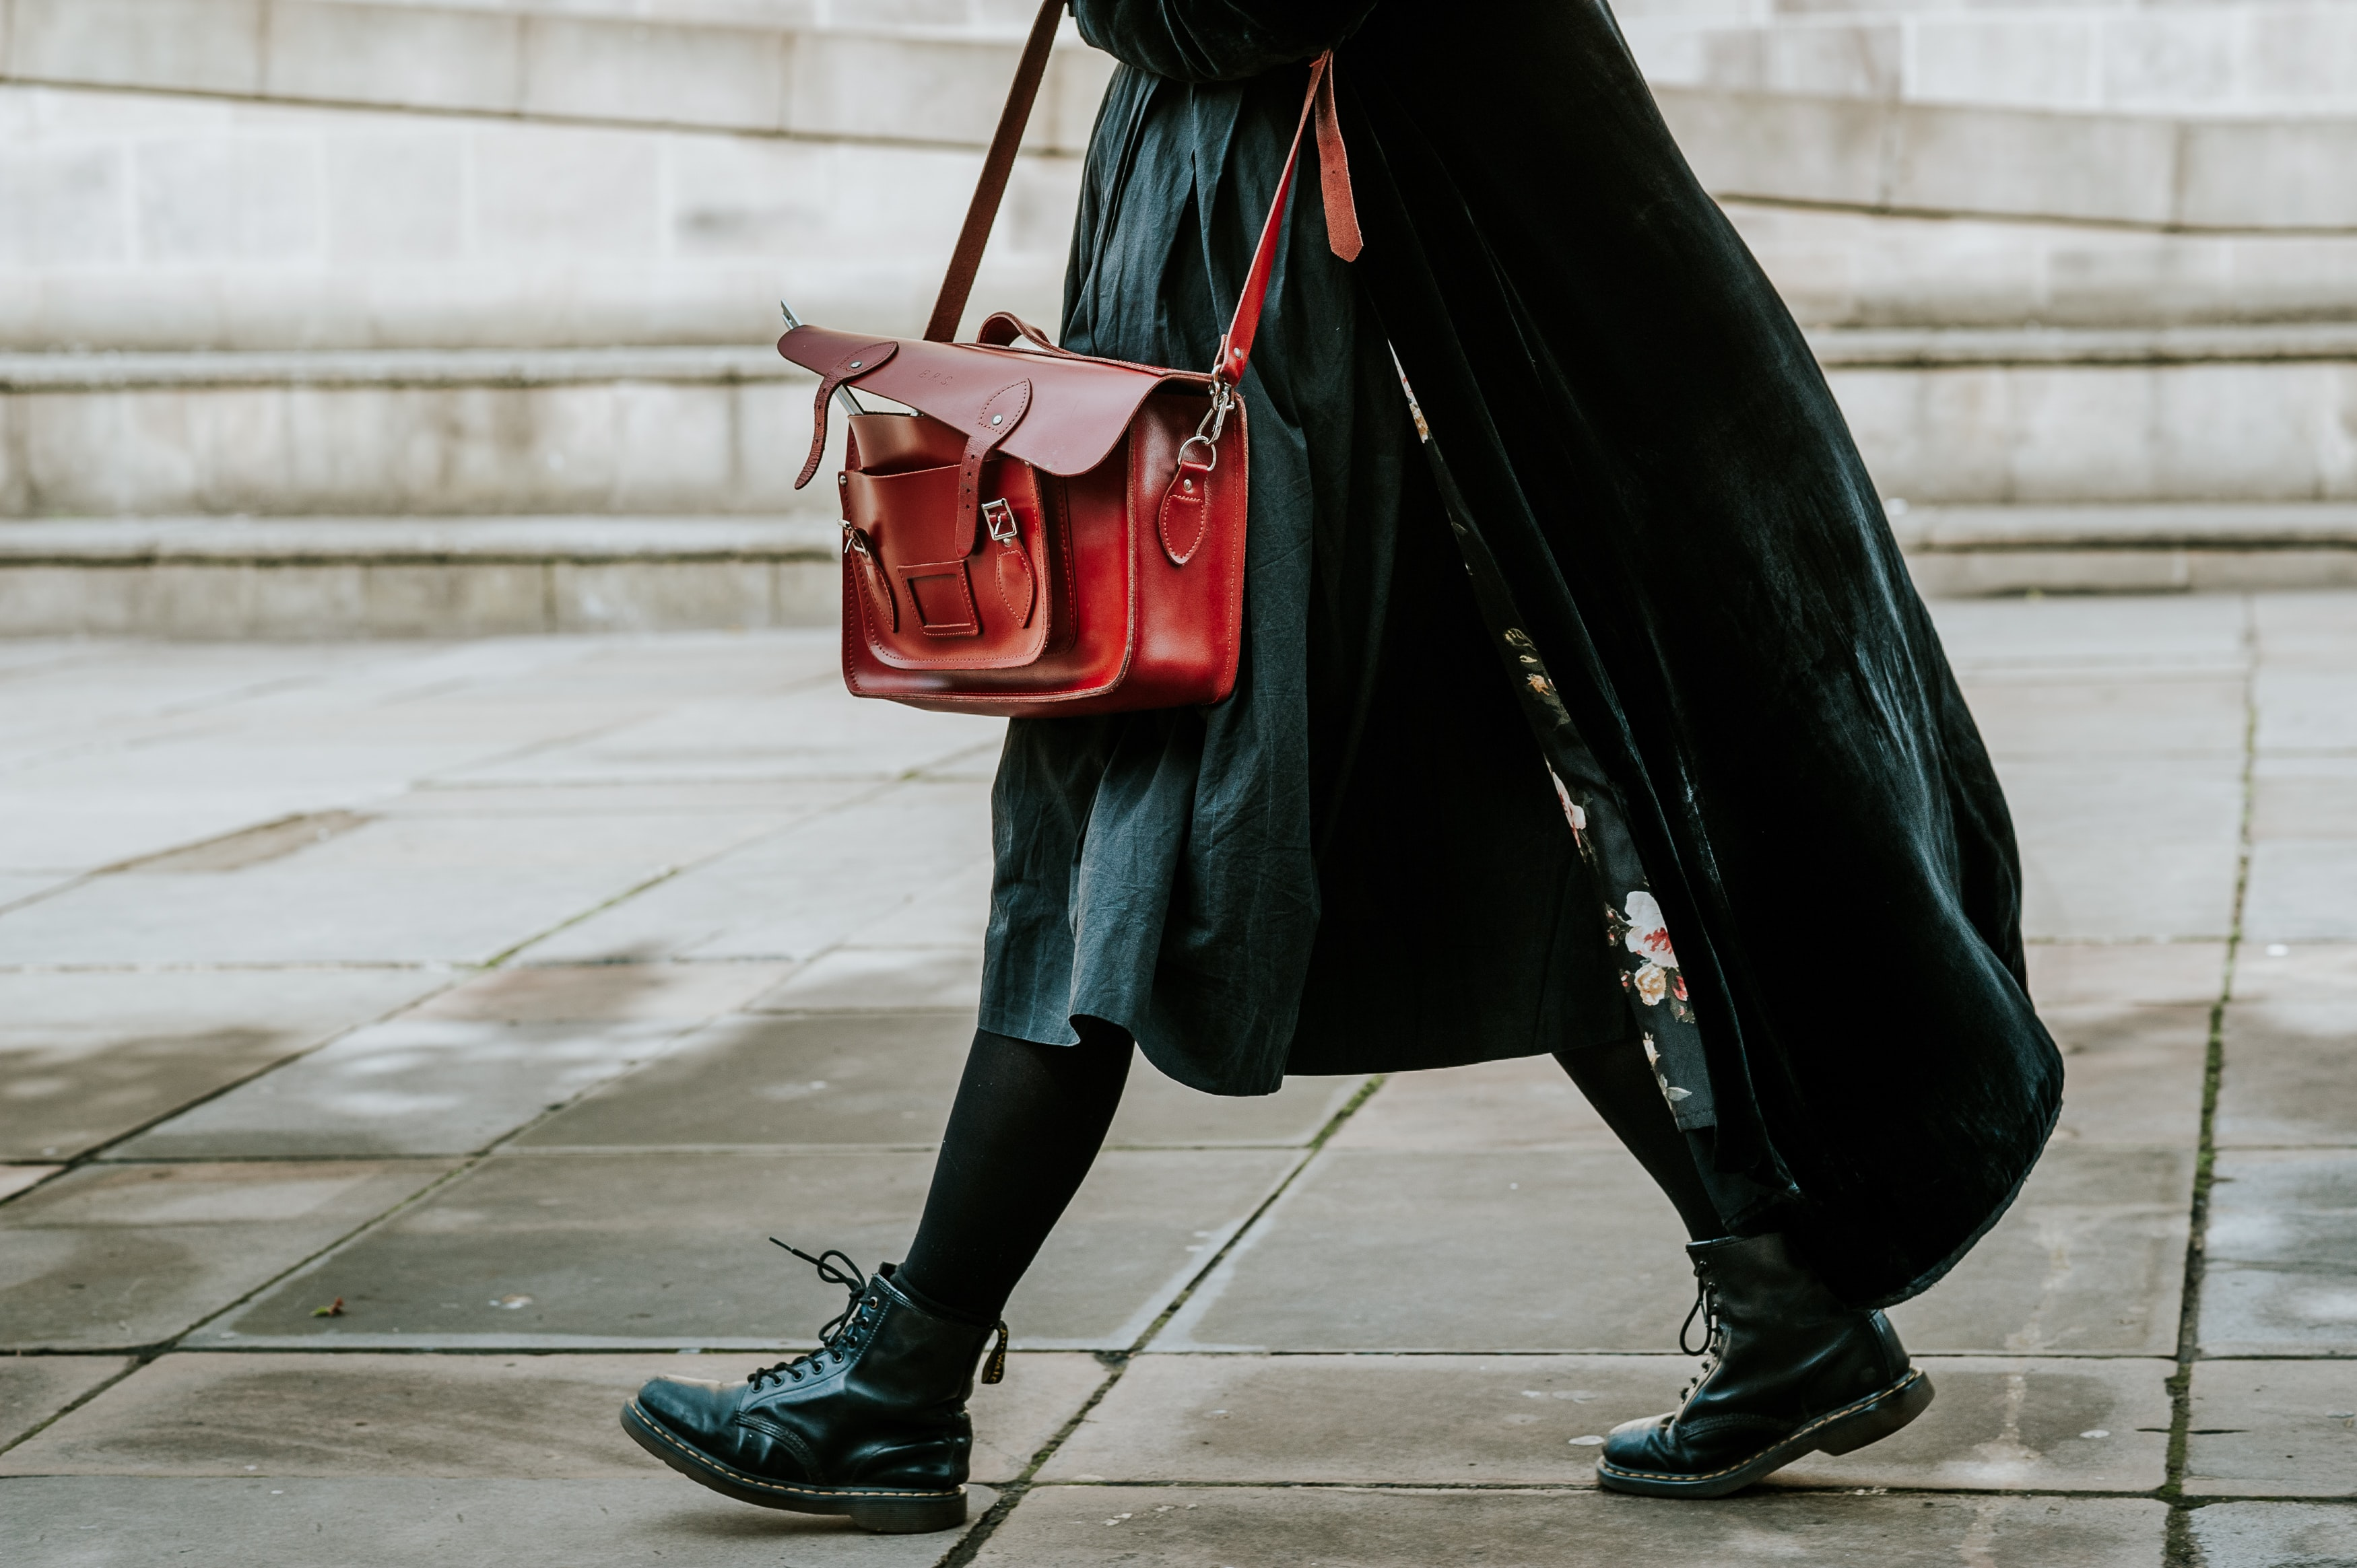 person in black coat carrying satchel bag while walking on street